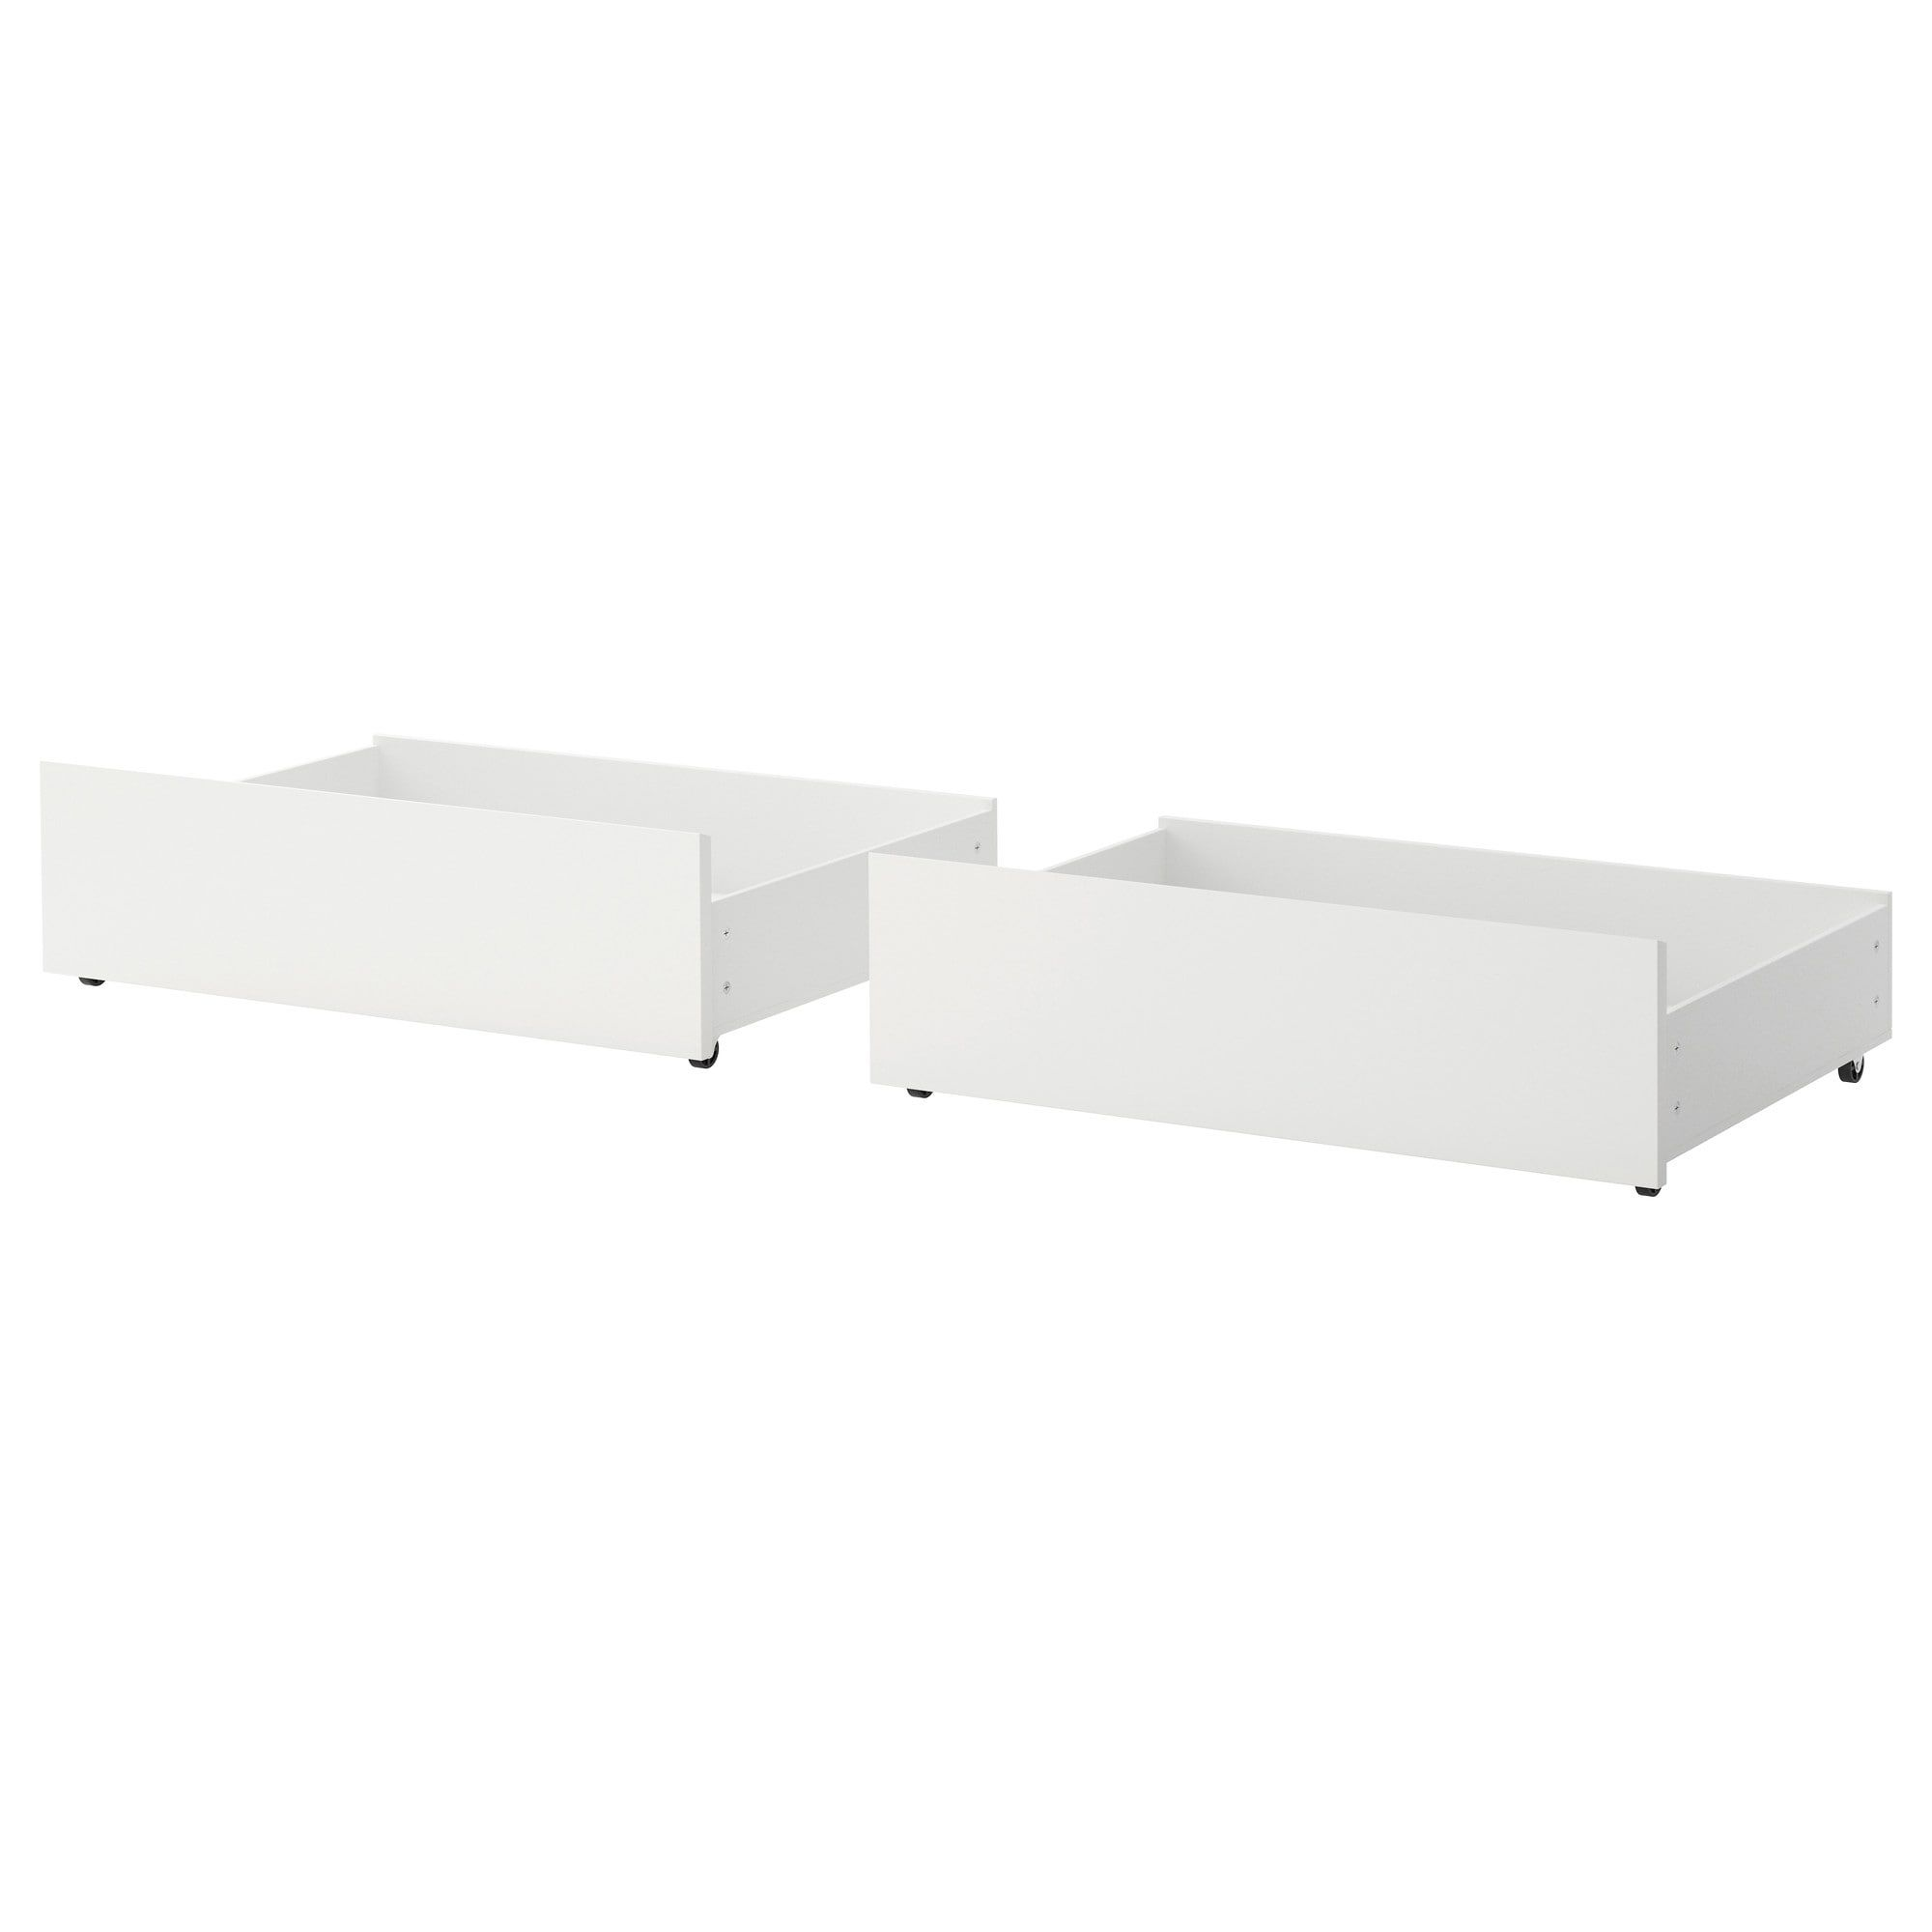 Malm Underbed Storage Box For High Bed White Ikea In 2020 High Bed Frame Malm Bed Under Bed Storage